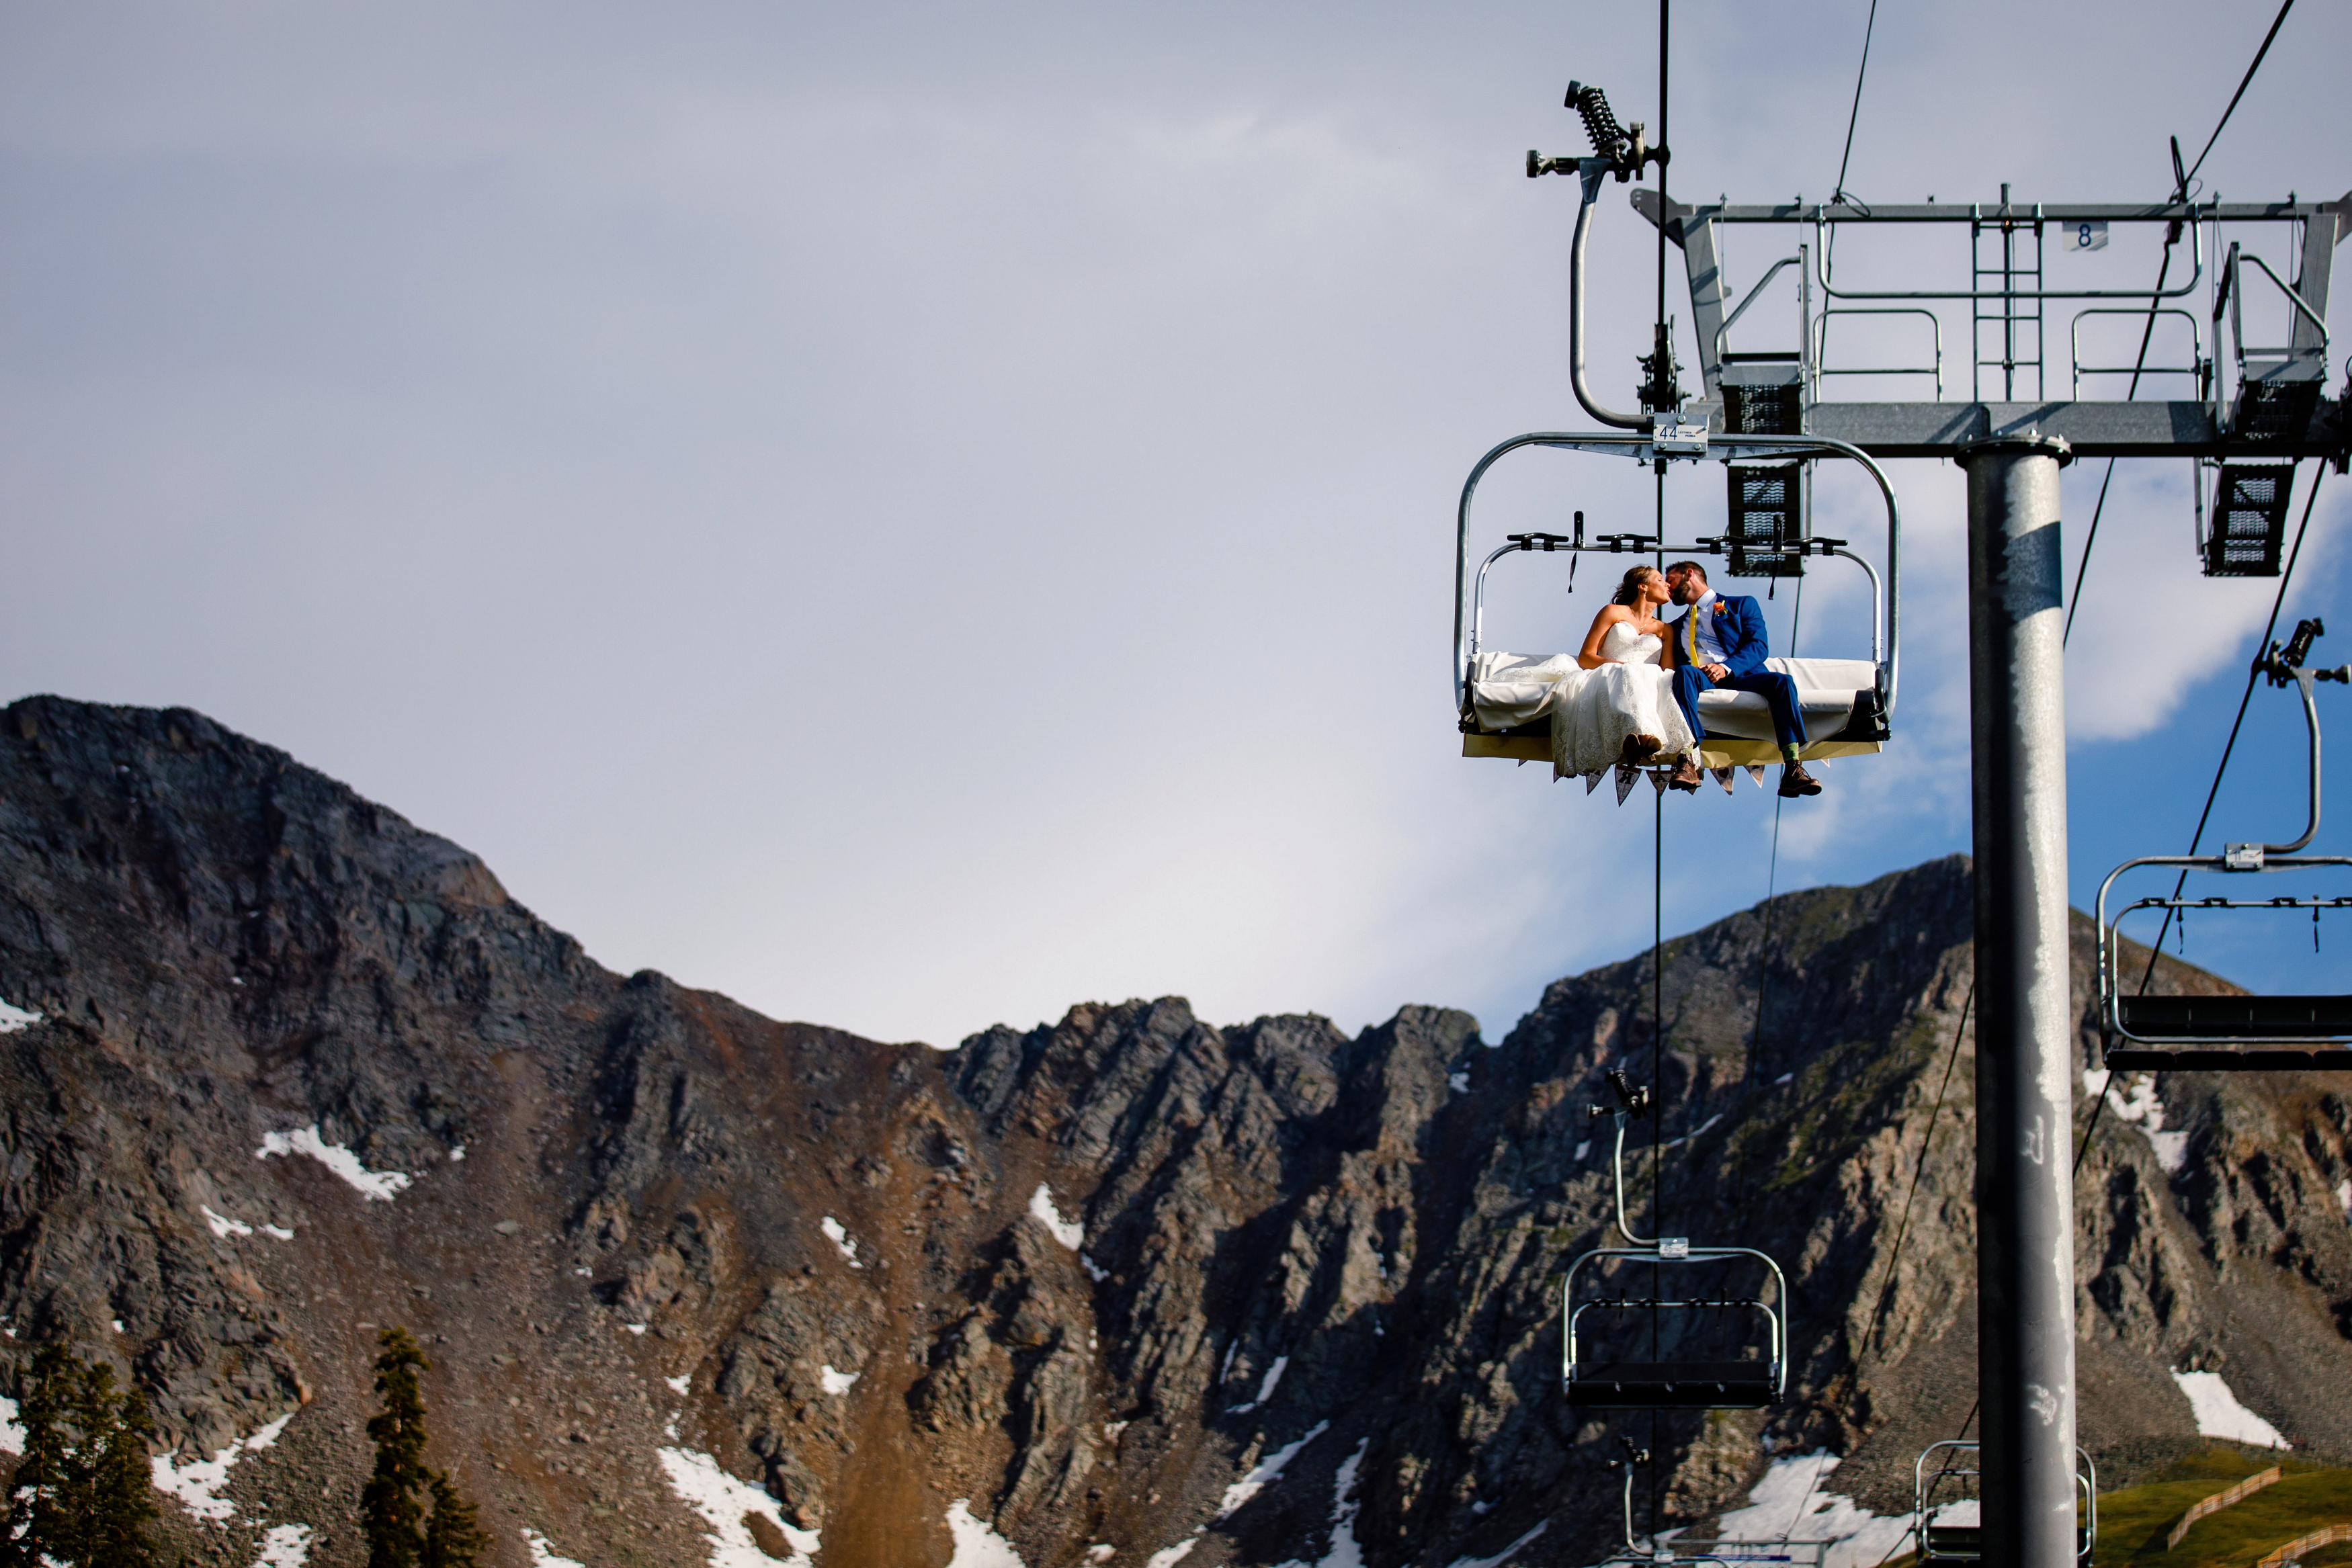 Bride & groom ride the chairlift down at Arapahoe Basin Wedding in Keystone, CO